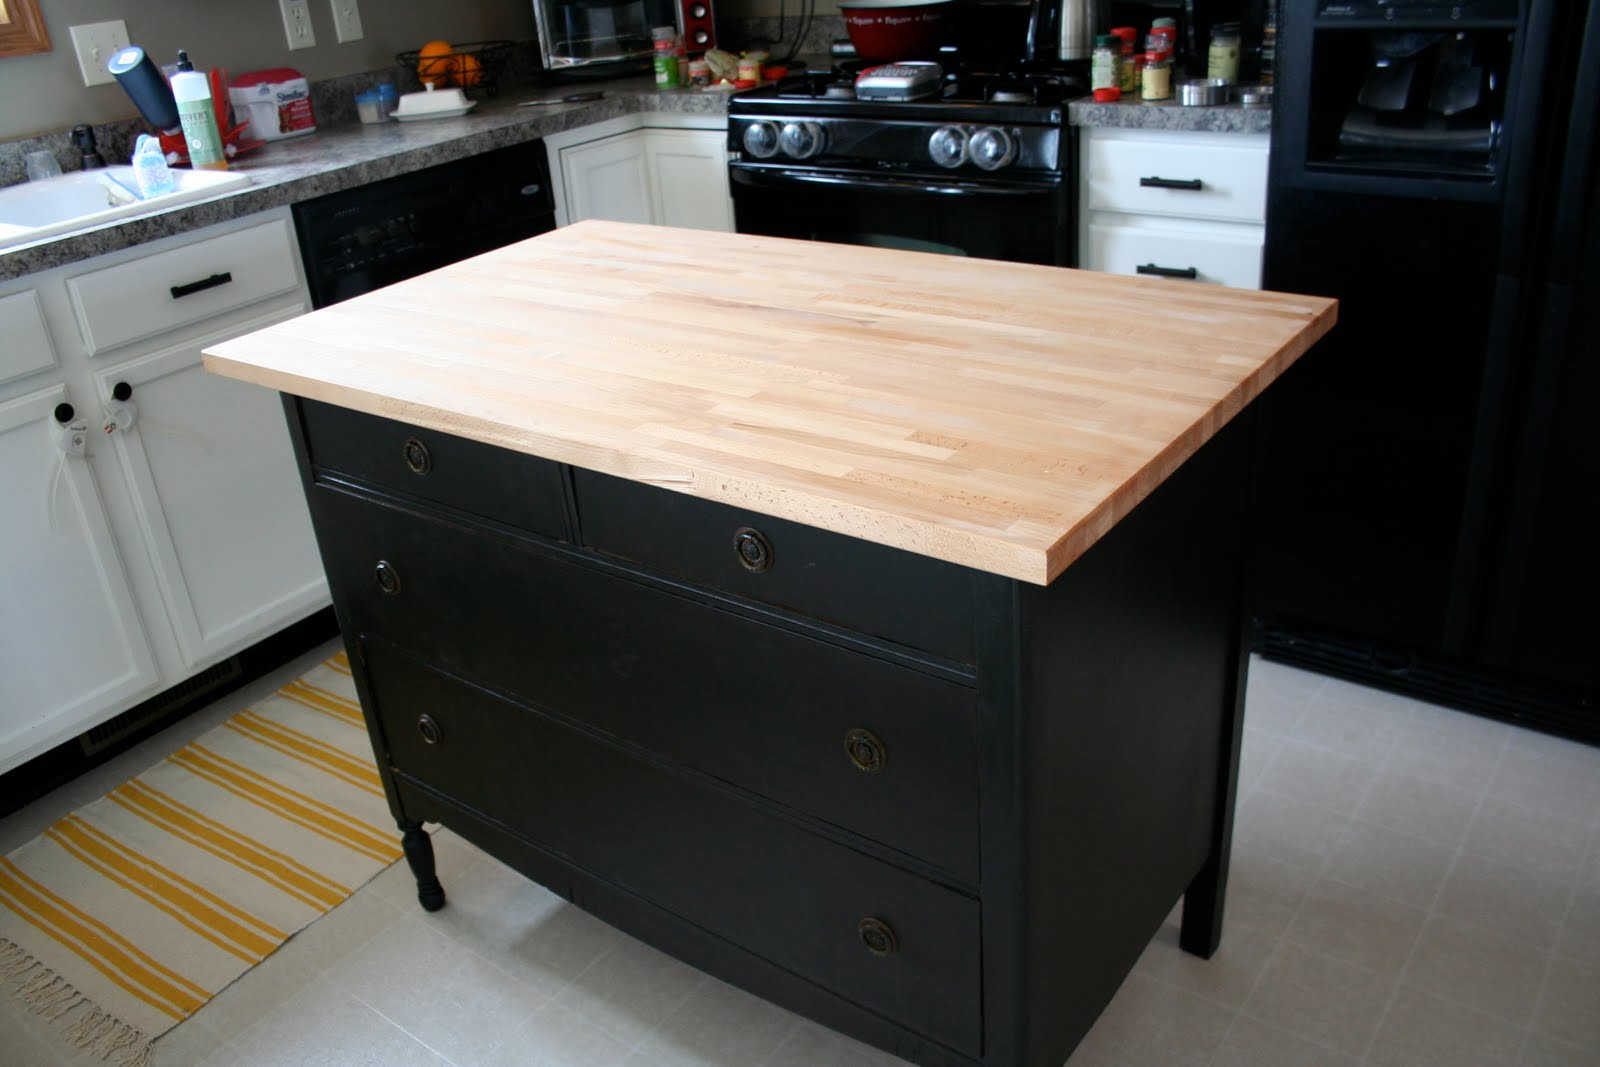 Best ideas about DIY Kitchen Island From Dresser . Save or Pin Homemakin and Decoratin Dresser as kitchen island Now.